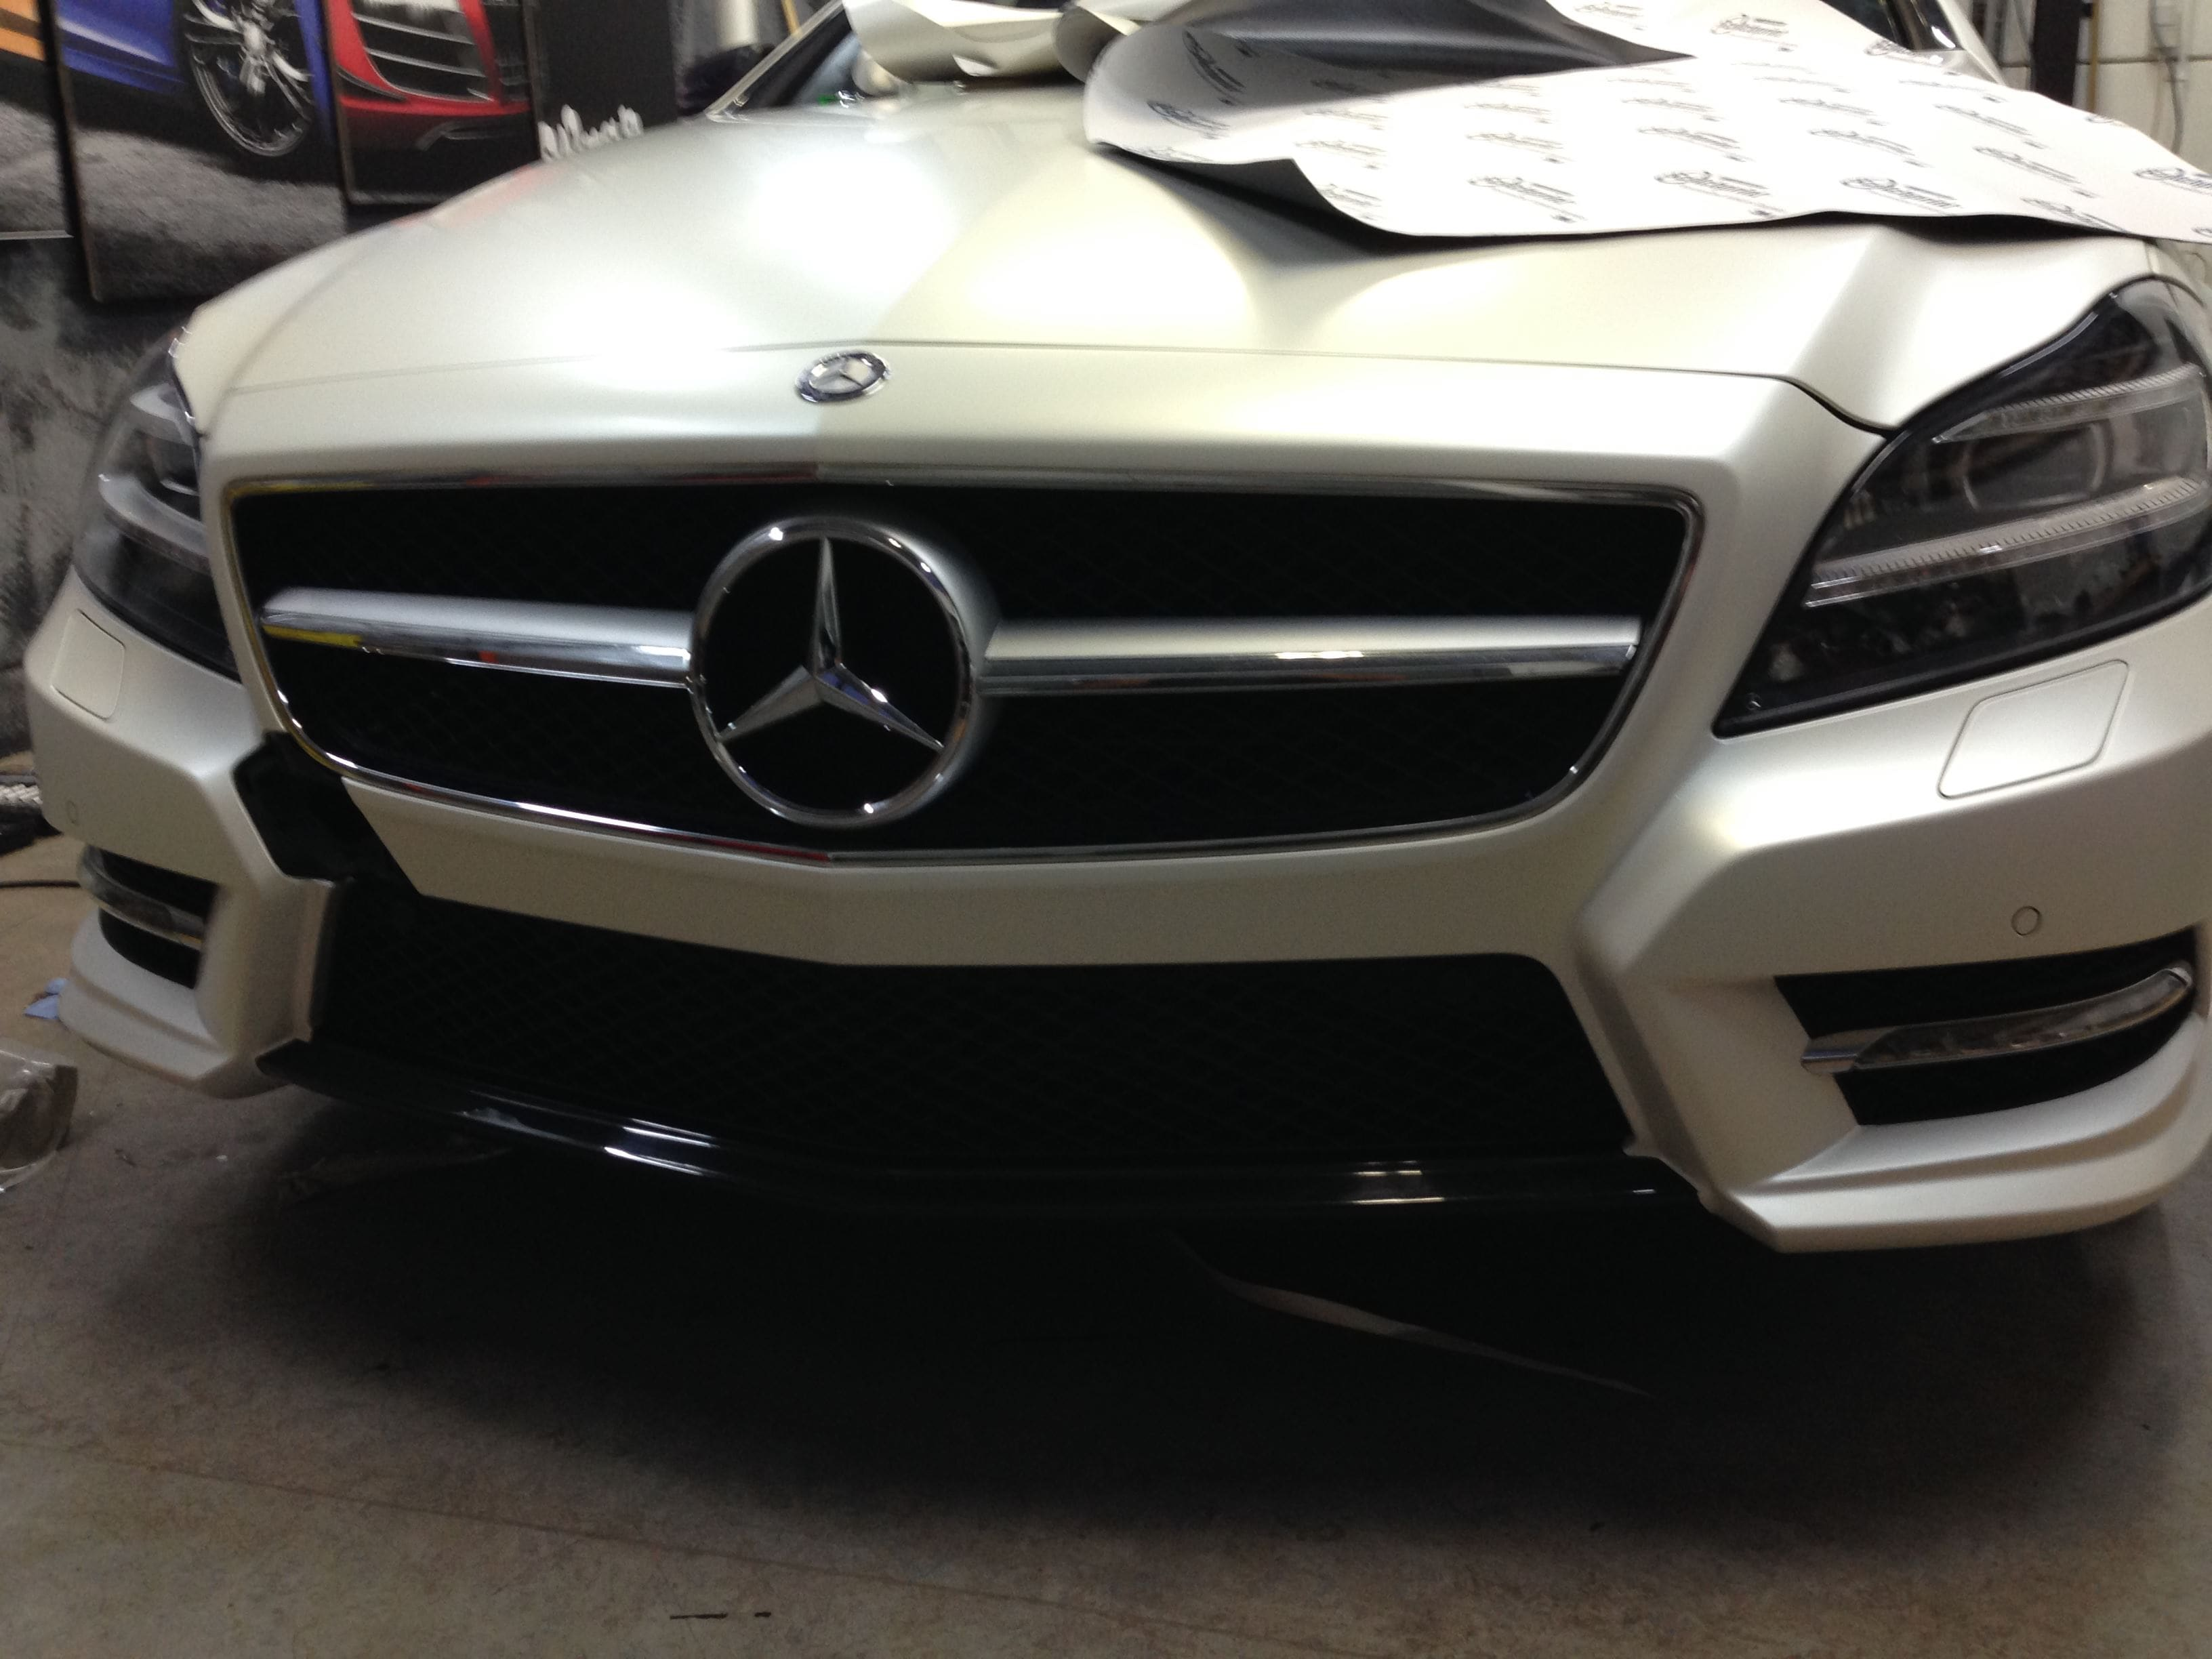 Mercedes CLS met White Satin Pearl Wrap, Carwrapping door Wrapmyride.nu Foto-nr:6186, ©2020